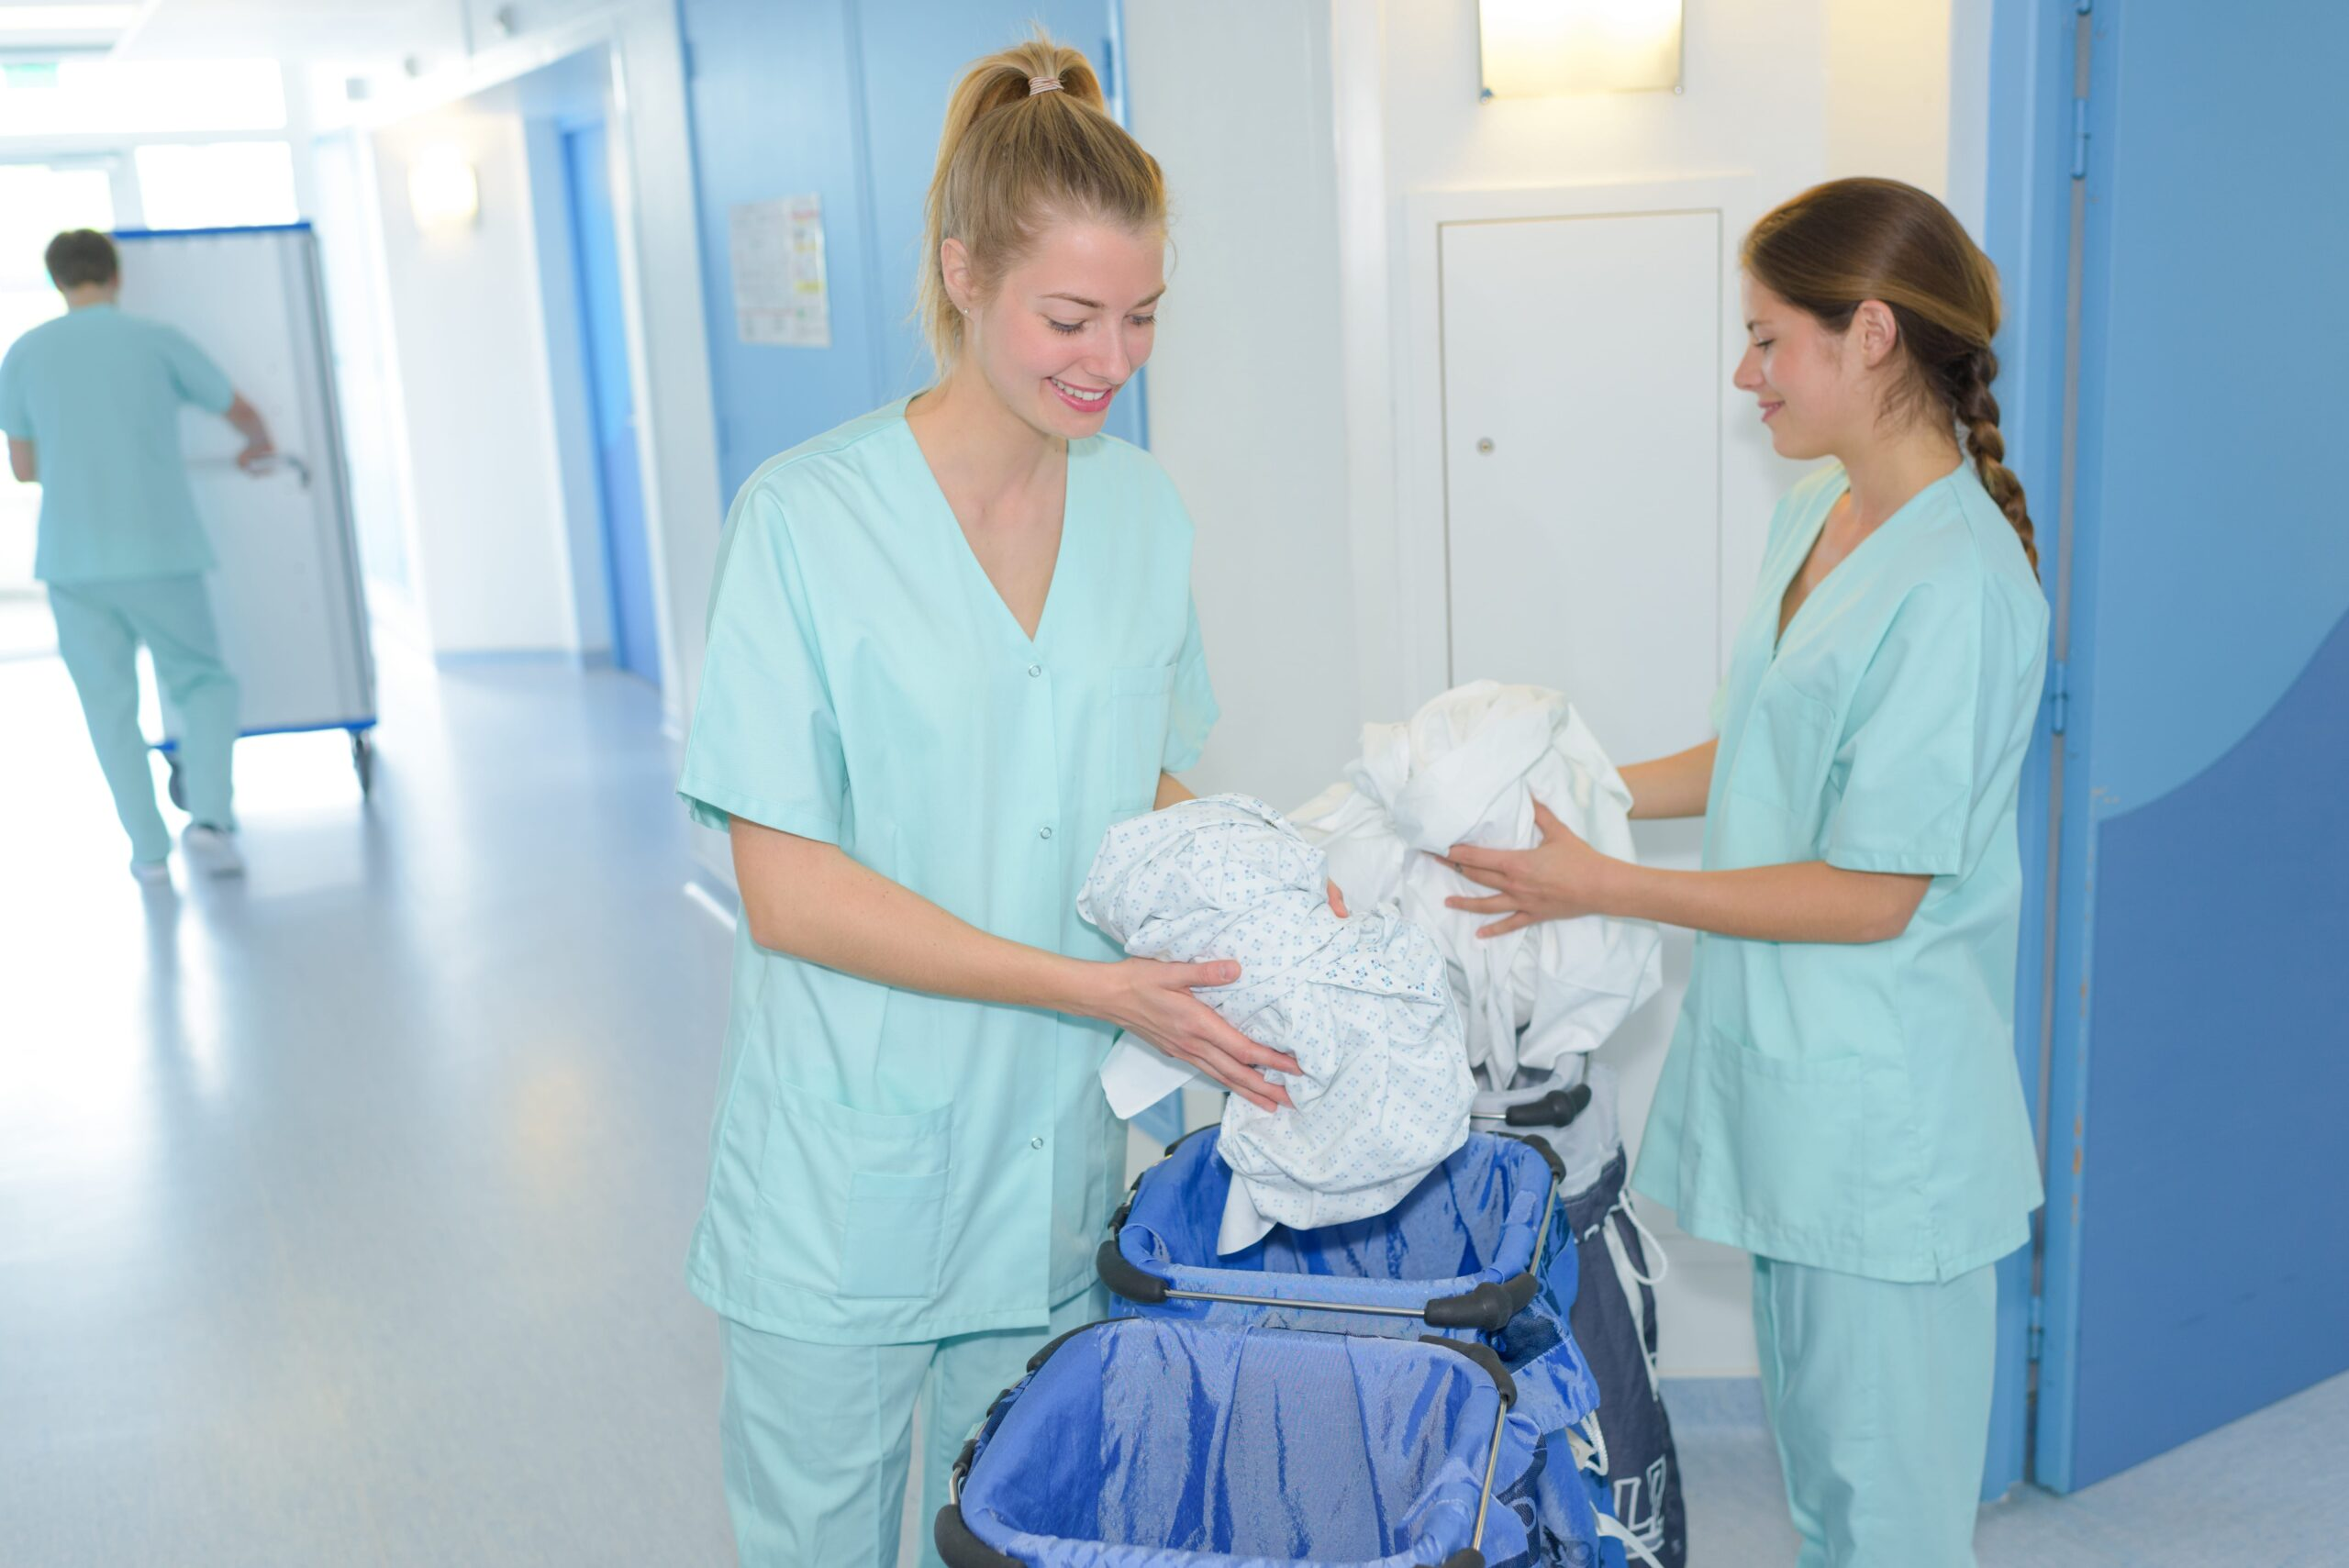 Keeping care homes clean